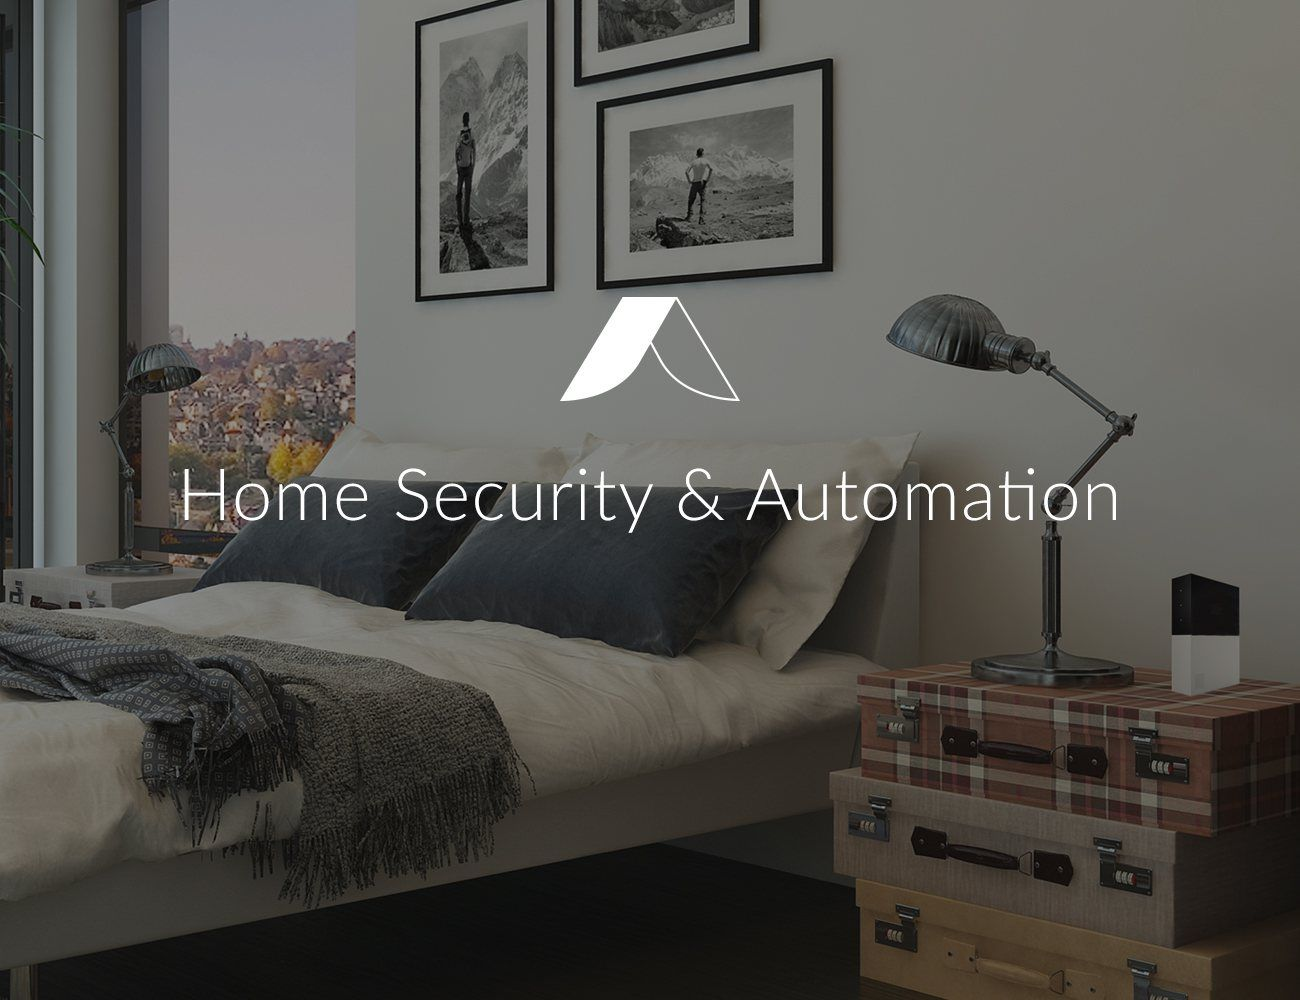 Abode Home Security u Home Automation Feel Safe at Home Home